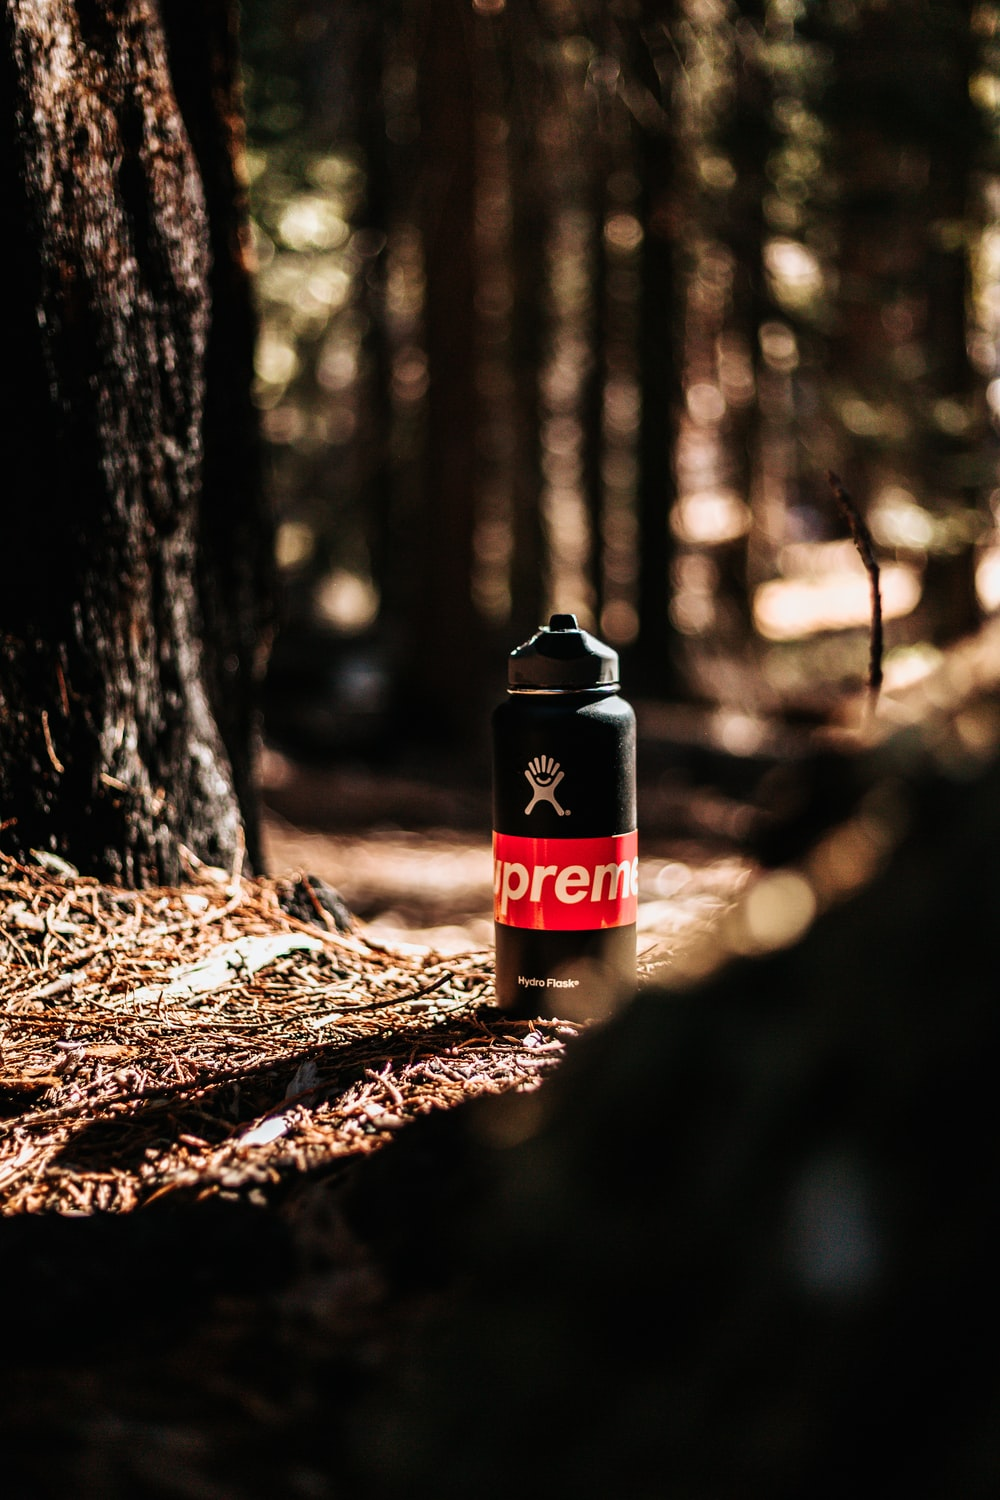 black and white Supreme sports bottle on the ground near tree